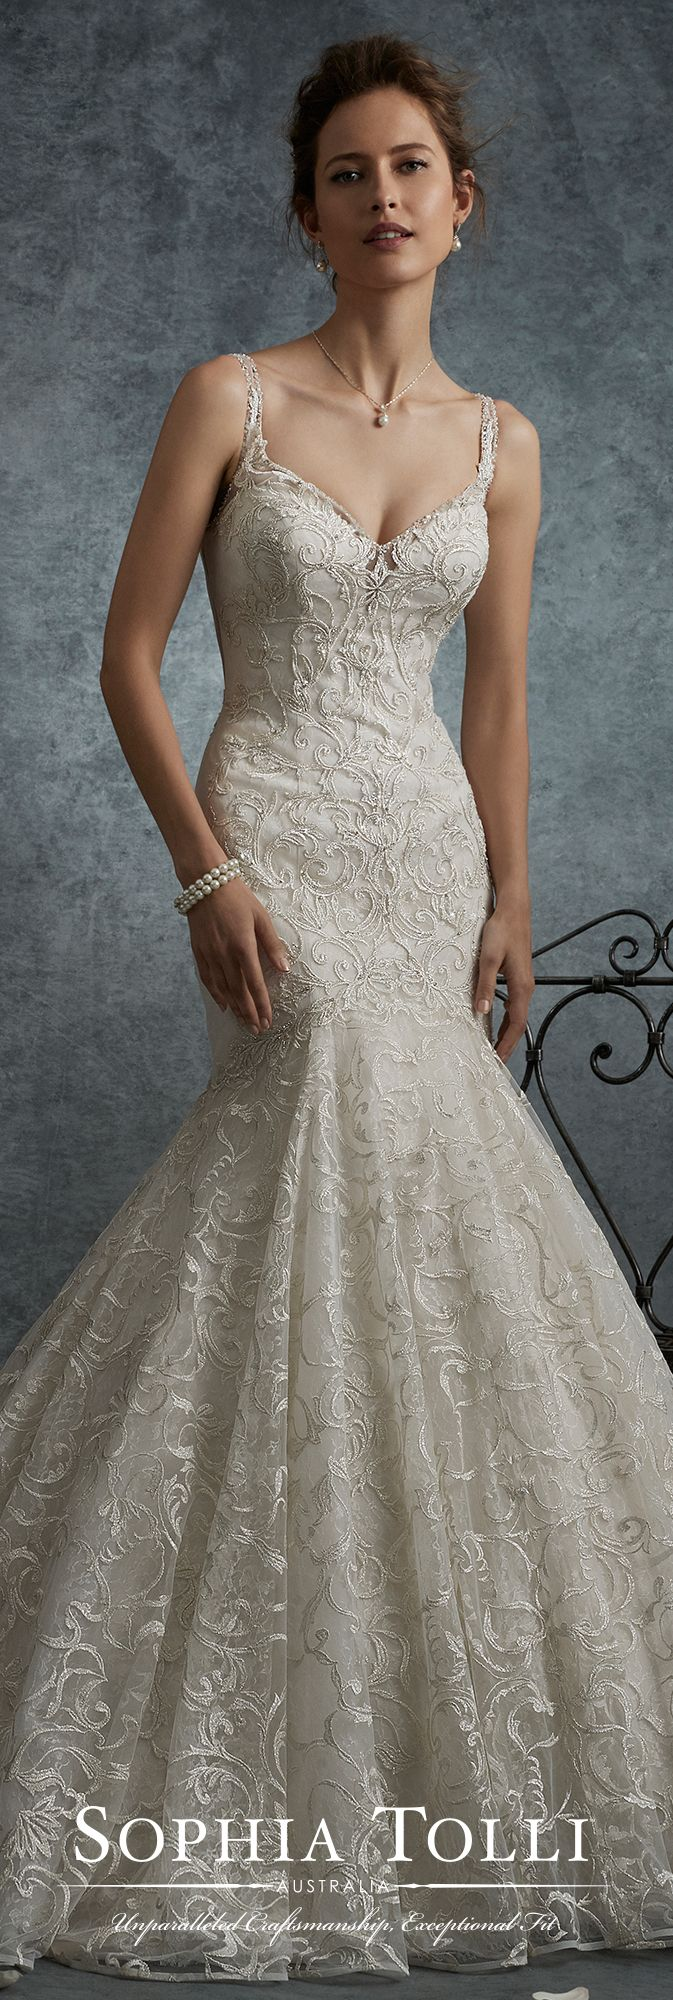 New Lace illusion back trumpet wedding dress Sophia Tolli Y